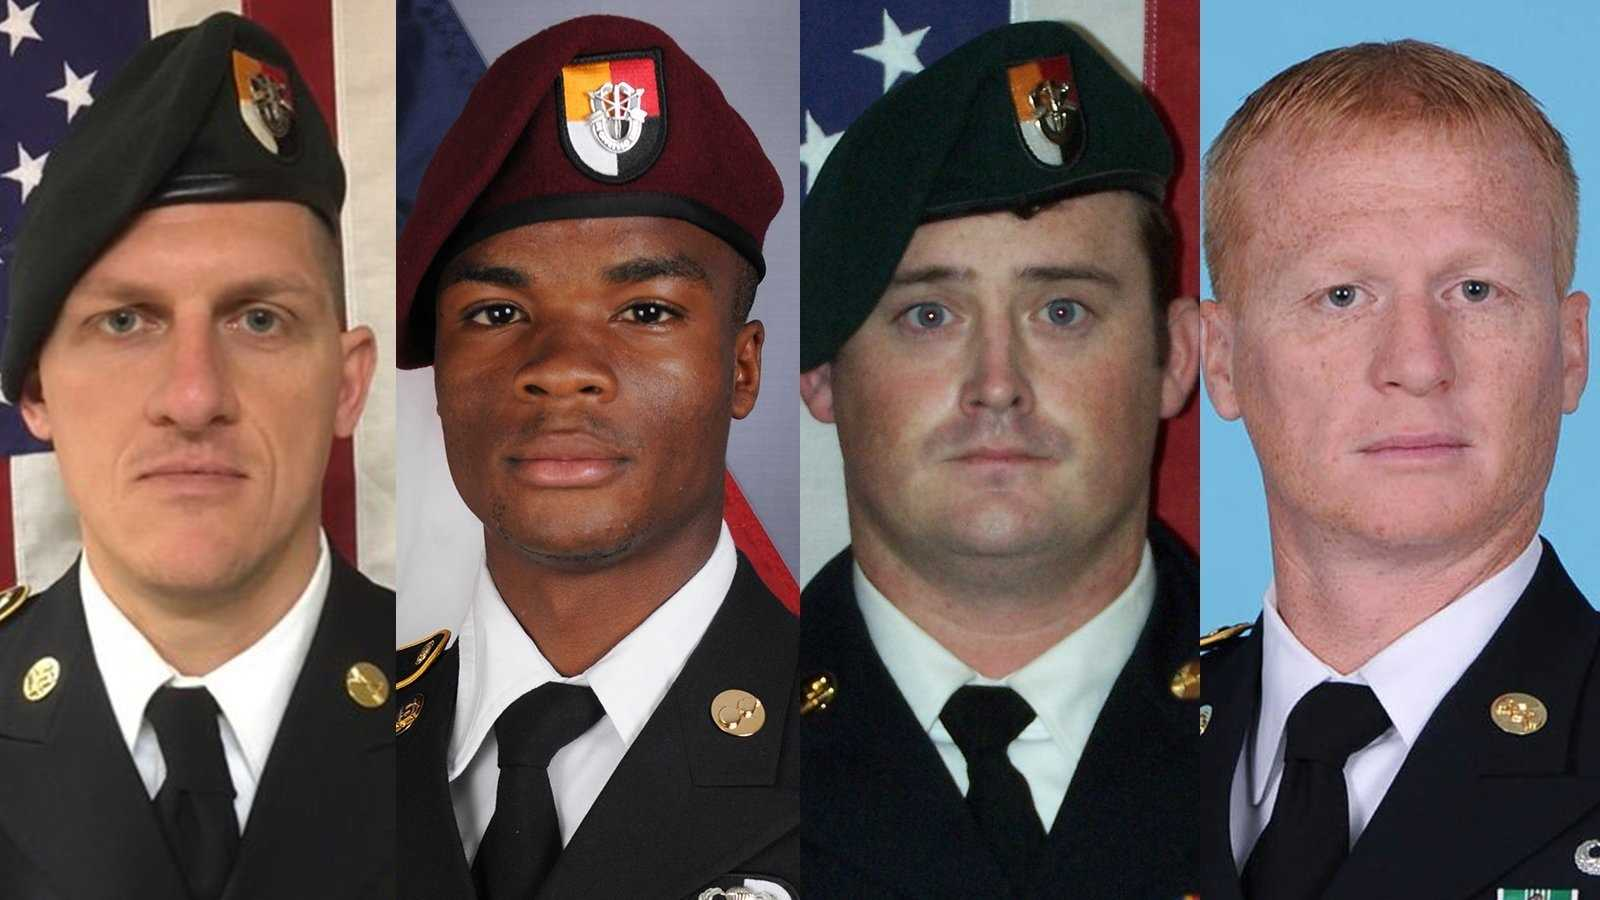 Pictured from left to right is Staff Sgt. Bryan Black, Sgt. La David Johnson, Staff Sgt. Dustin Wright, Staff Sgt. Jeremiah Johnson.